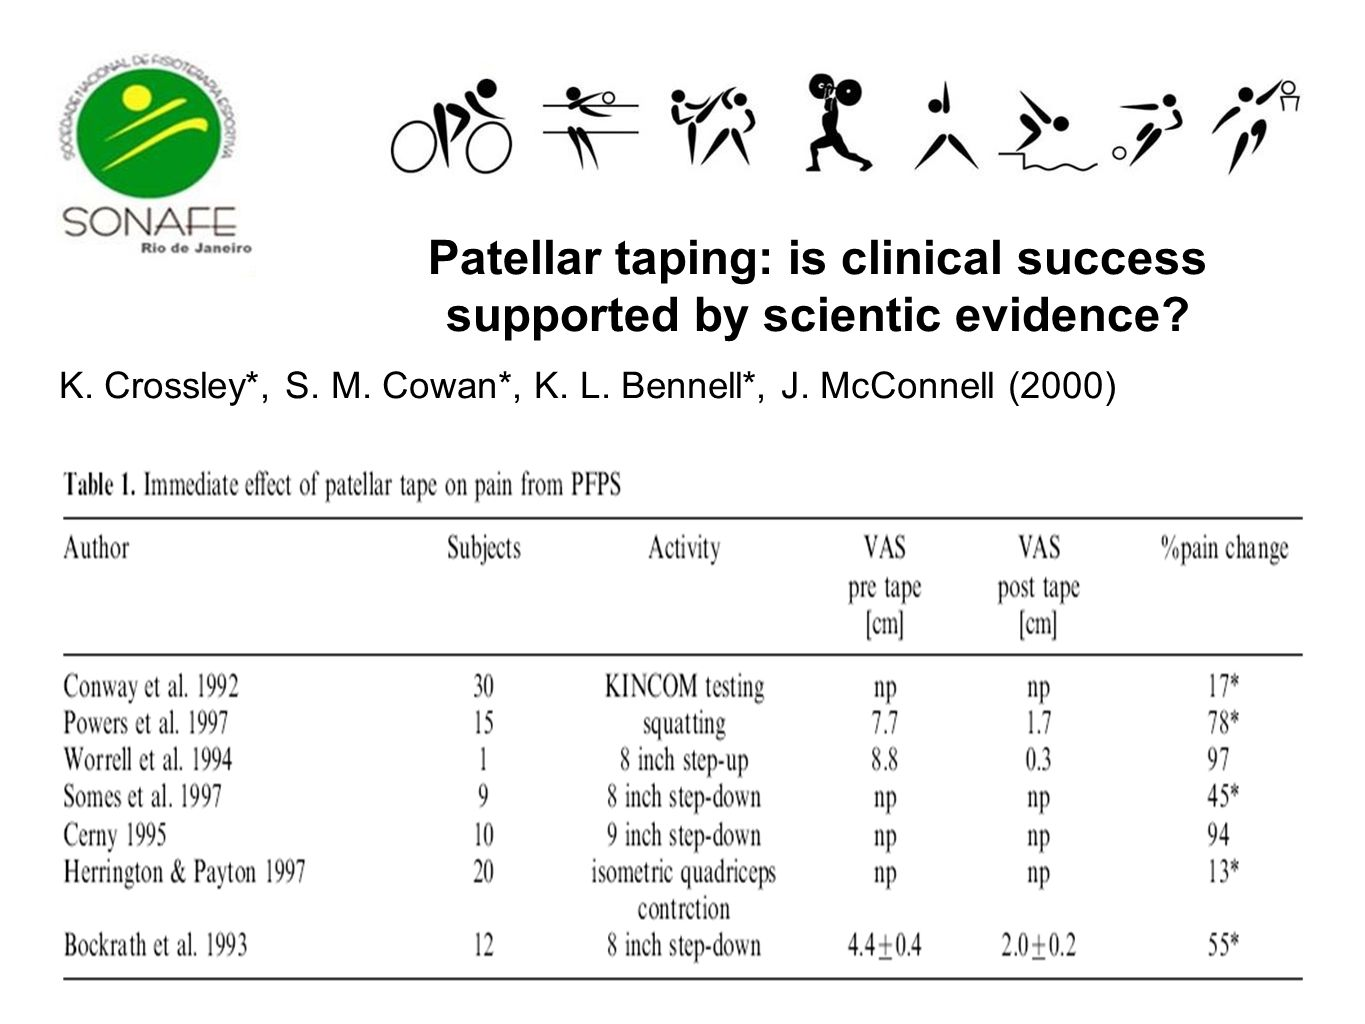 Patellar taping: is clinical success supported by scientic evidence? K. Crossley*, S. M. Cowan*, K. L. Bennell*, J. McConnell (2000)